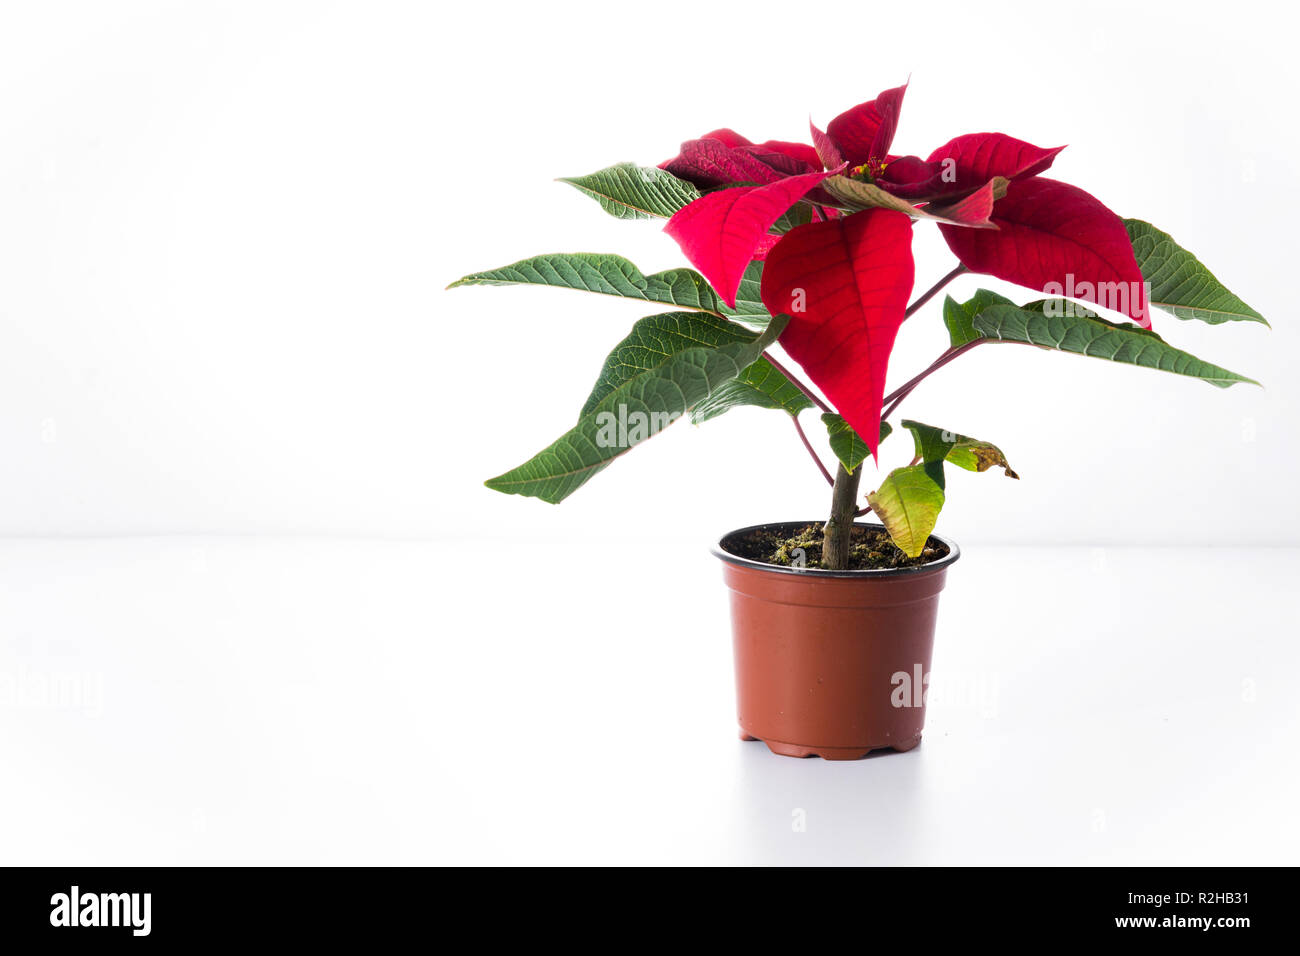 Christmas poinsettia flower isolated on white background. Copyspace - Stock Image